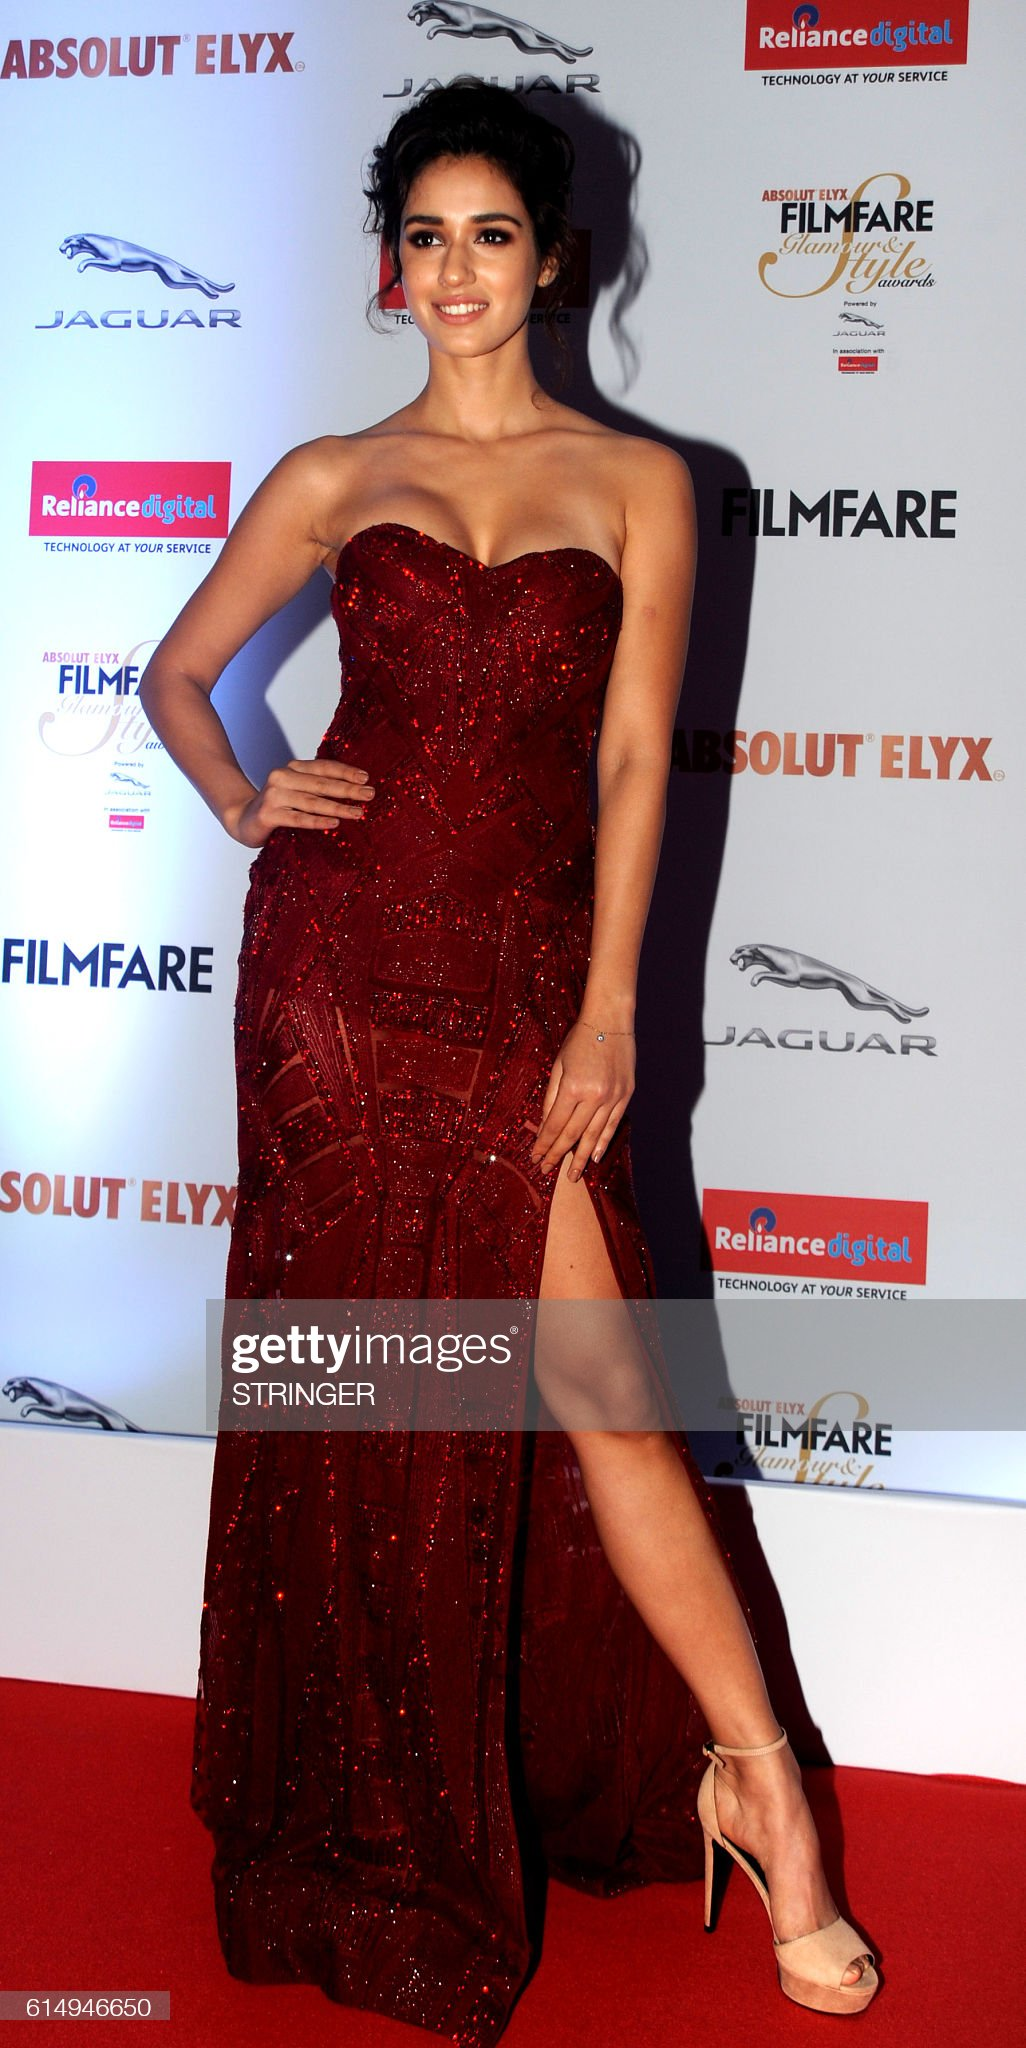 indian-bollywood-actress-disha-patani-attends-the-filmfare-glamour-picture-id614946650